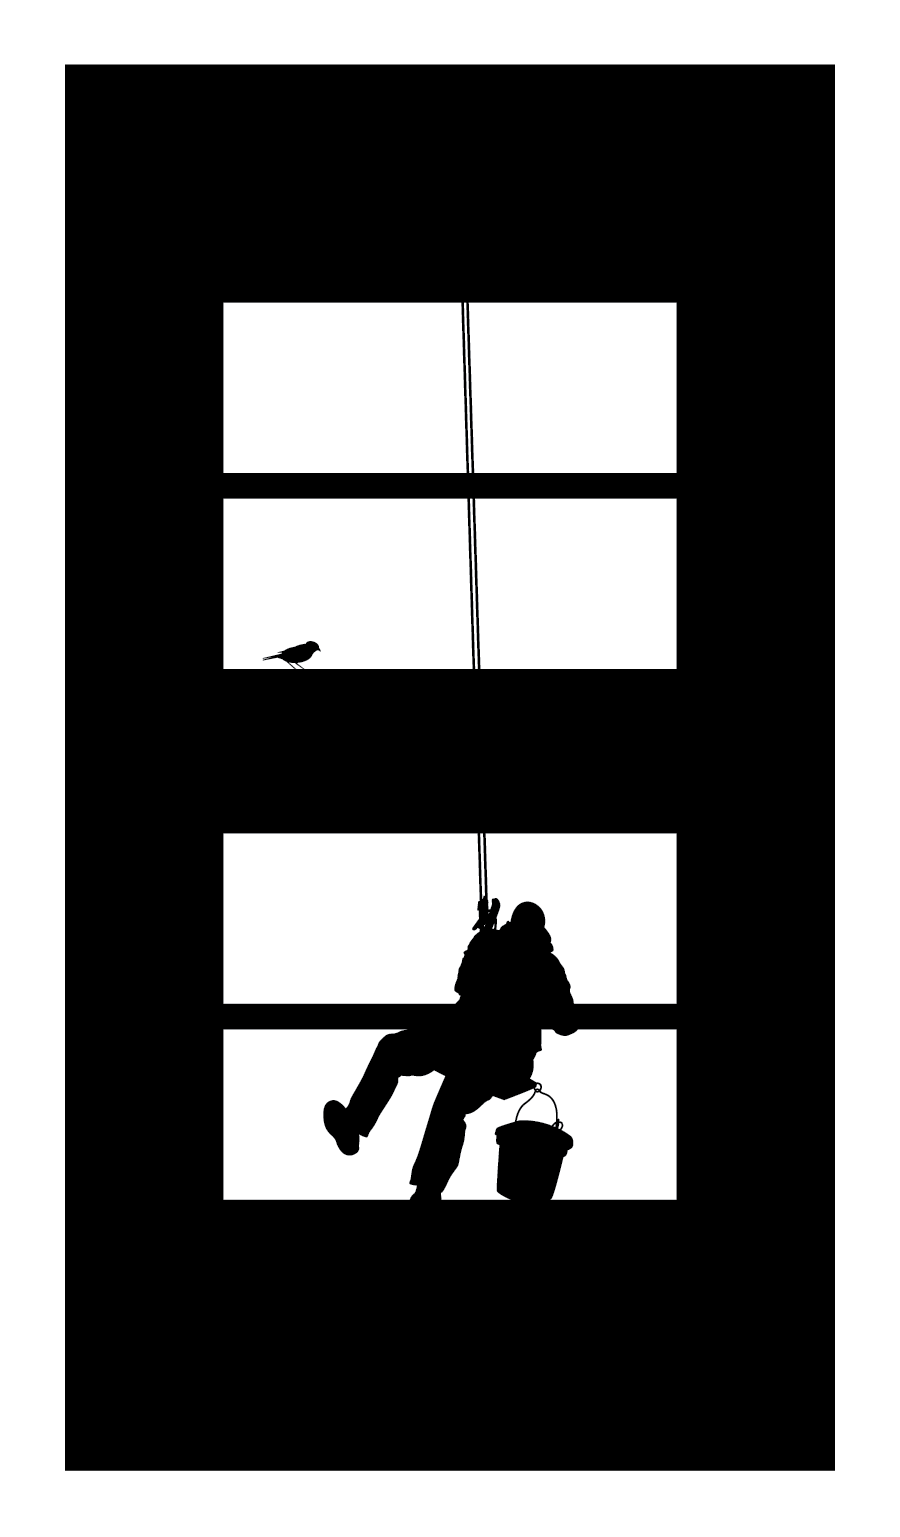 Fig. 10 - Window washer